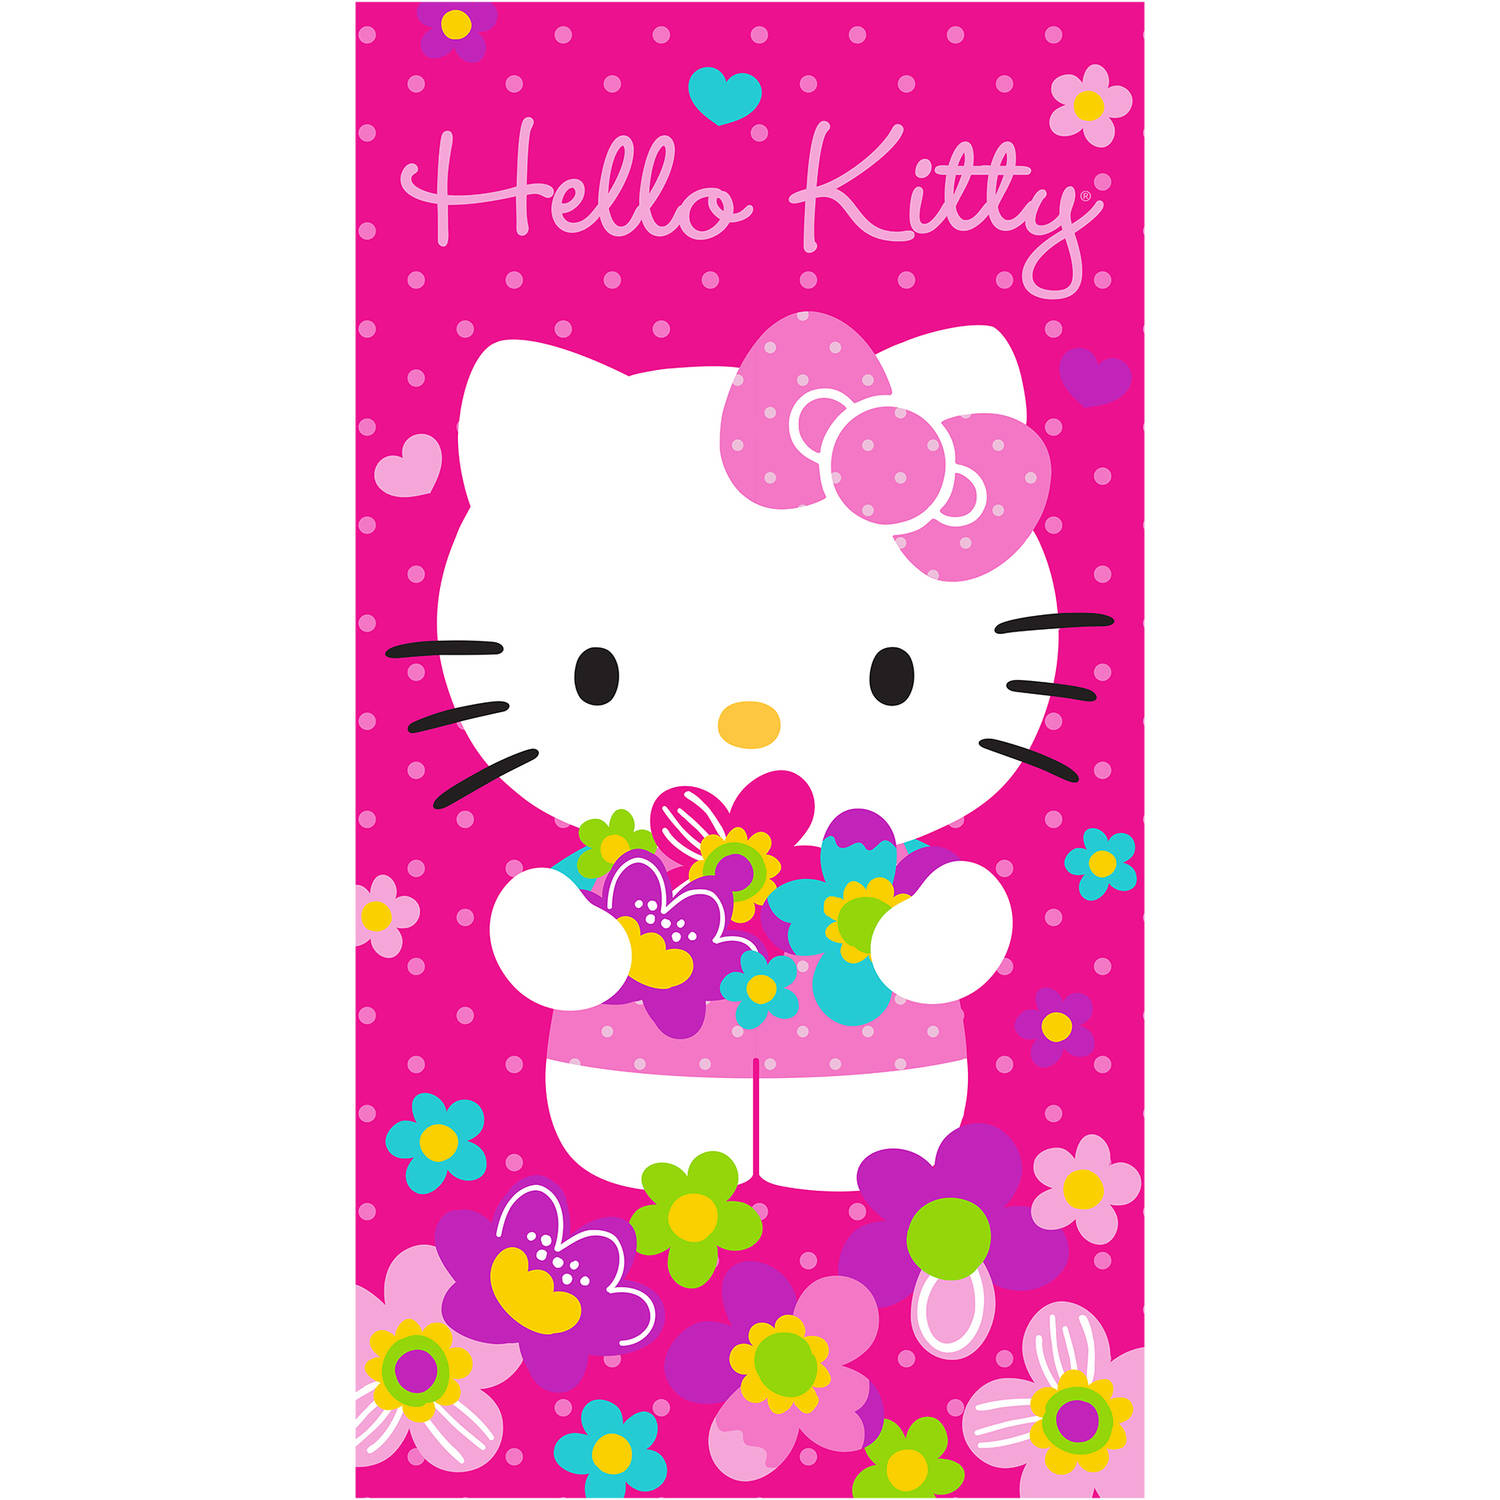 Hello Kitty 'Bunches of Flowers' Kids Sleeping Bag and Tote